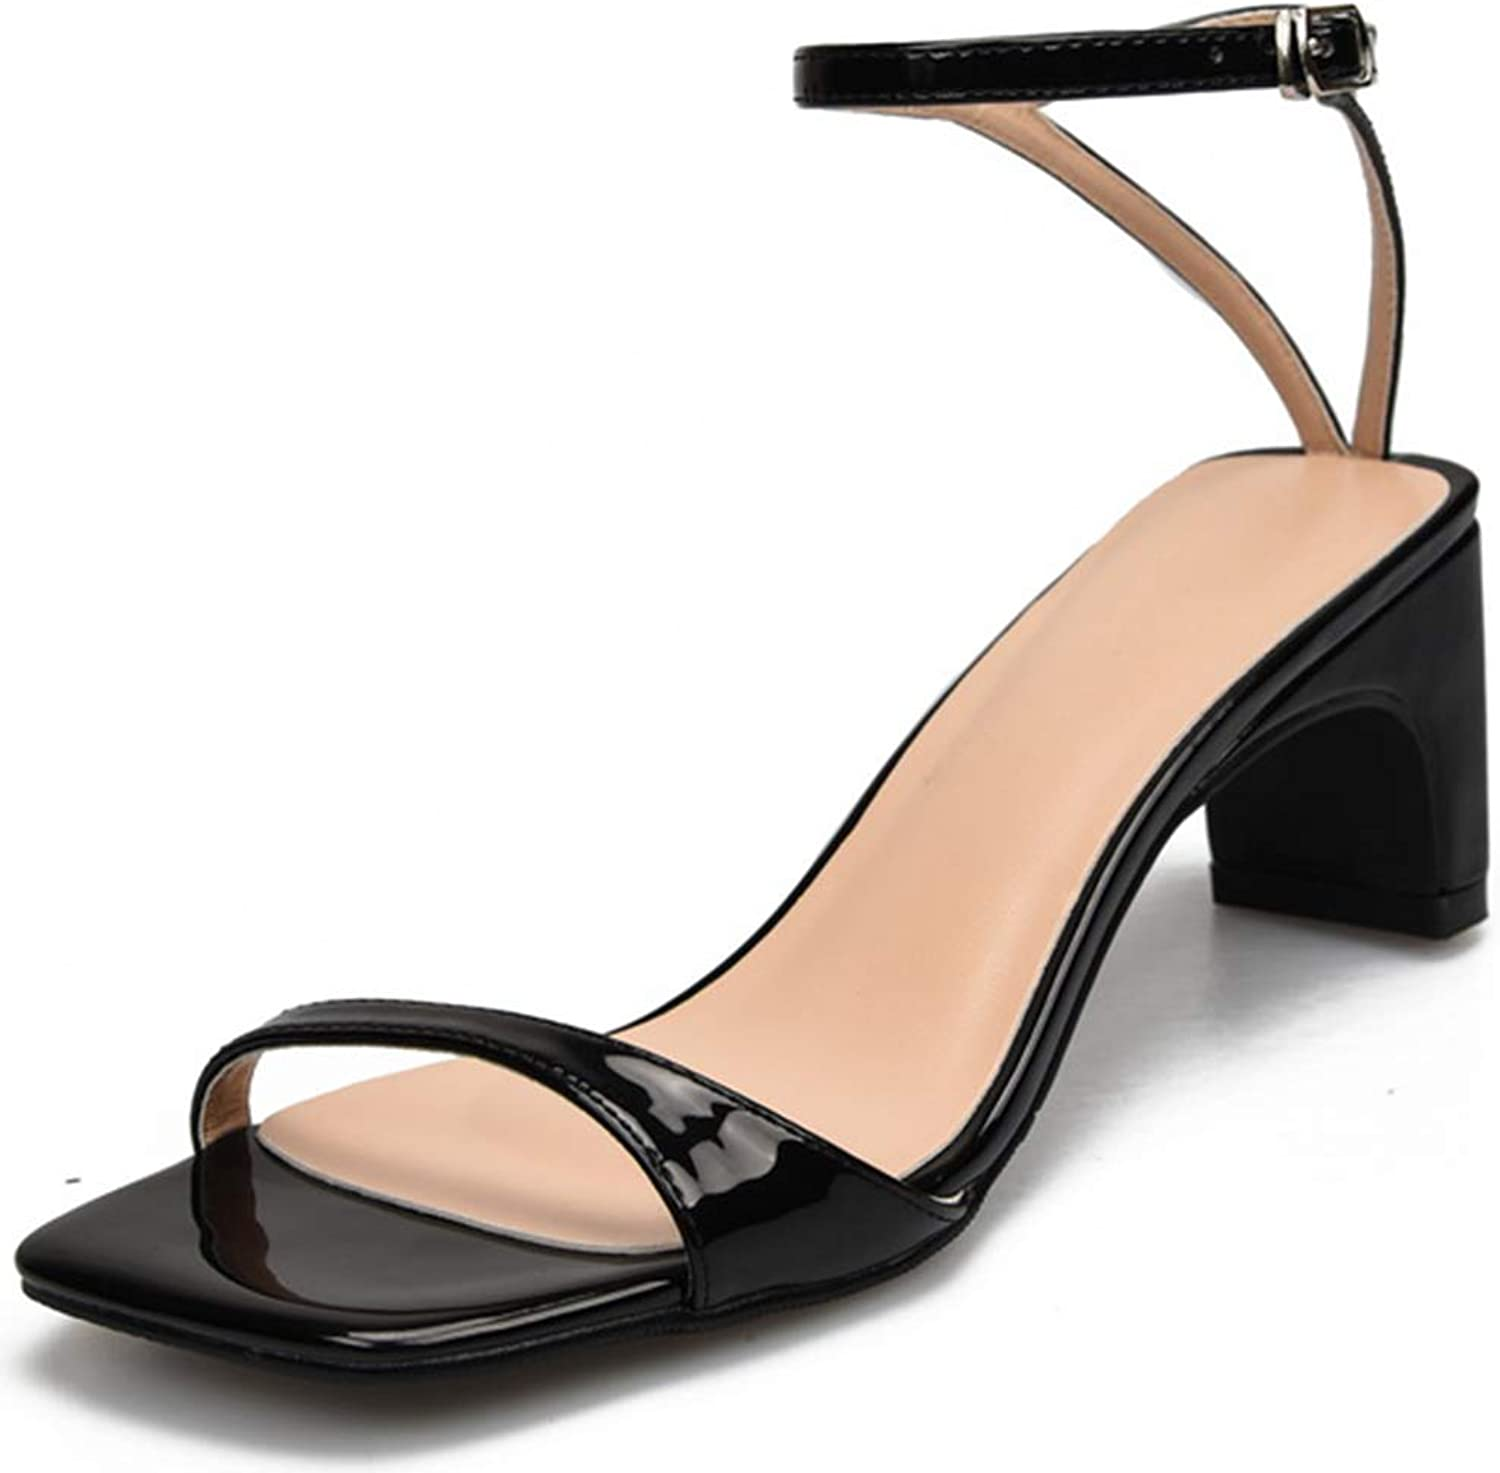 Women's Summer Large Size Chunky Sandals, 6cm Patent Leather Square Toe Pumps, Stylish Lightweight High Heel Sandals